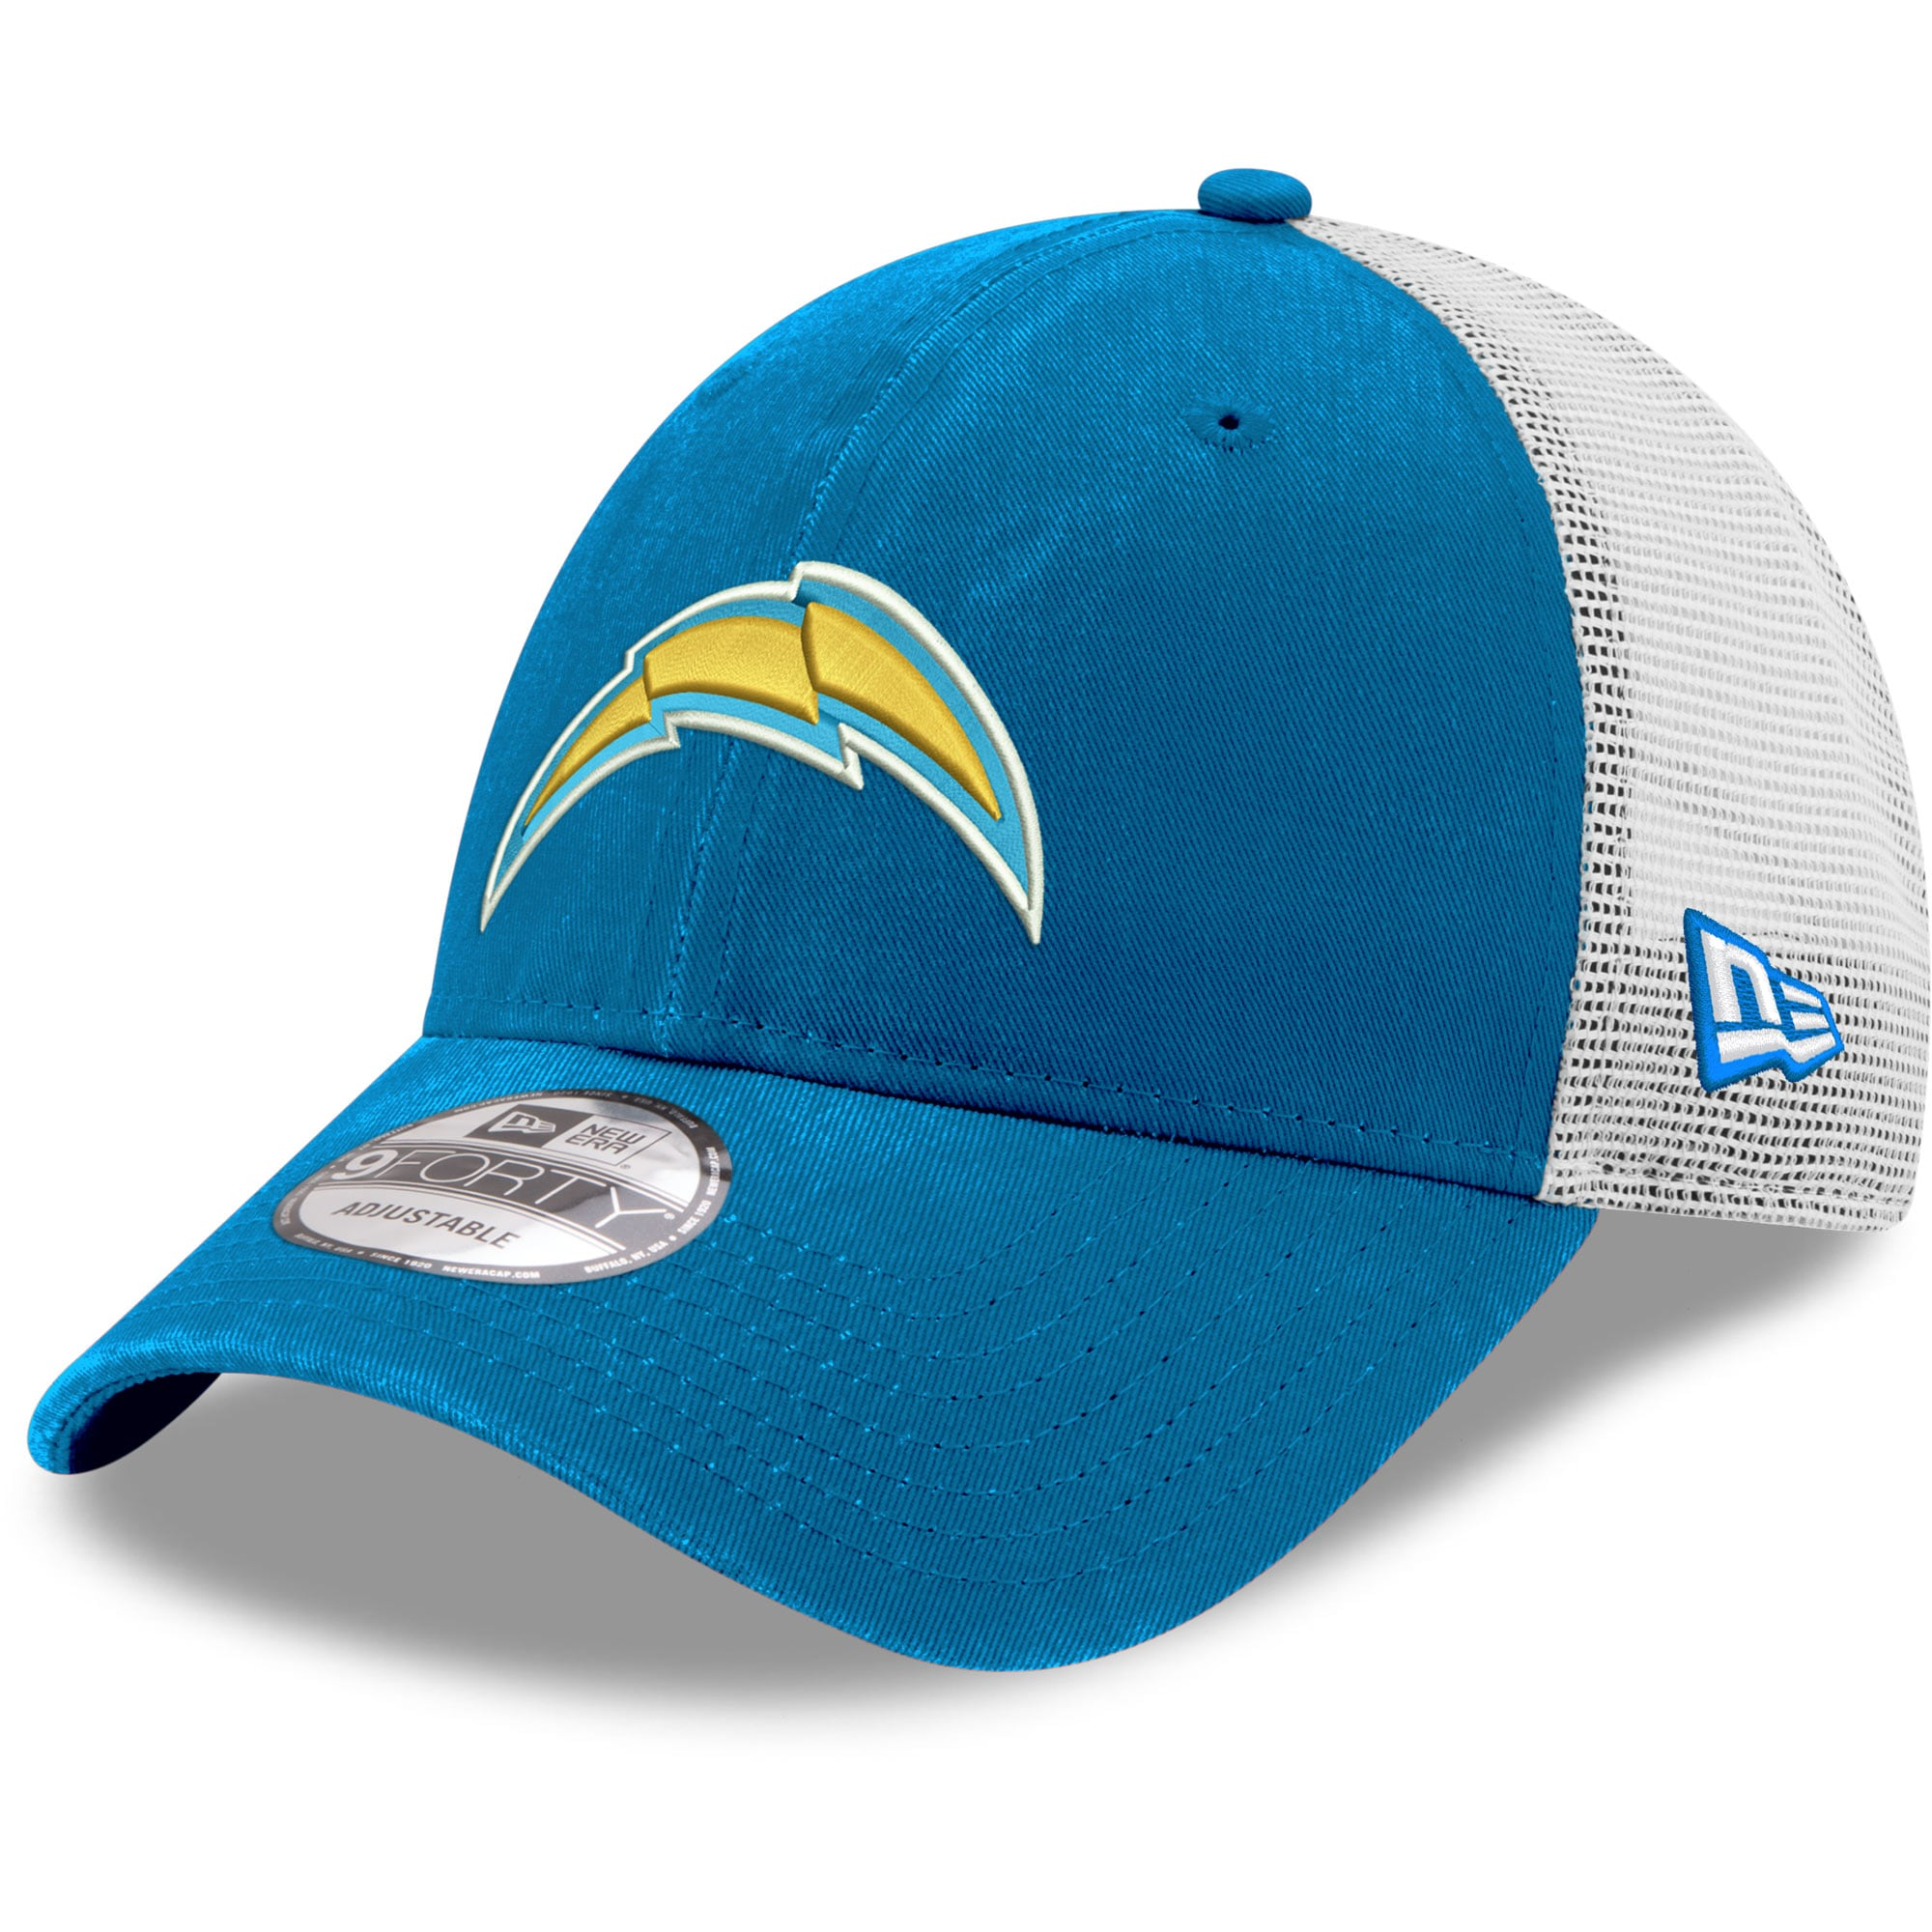 Los Angeles Chargers New Era Blue Trucker 9FORTY Adjustable Hat - Blue/Gray